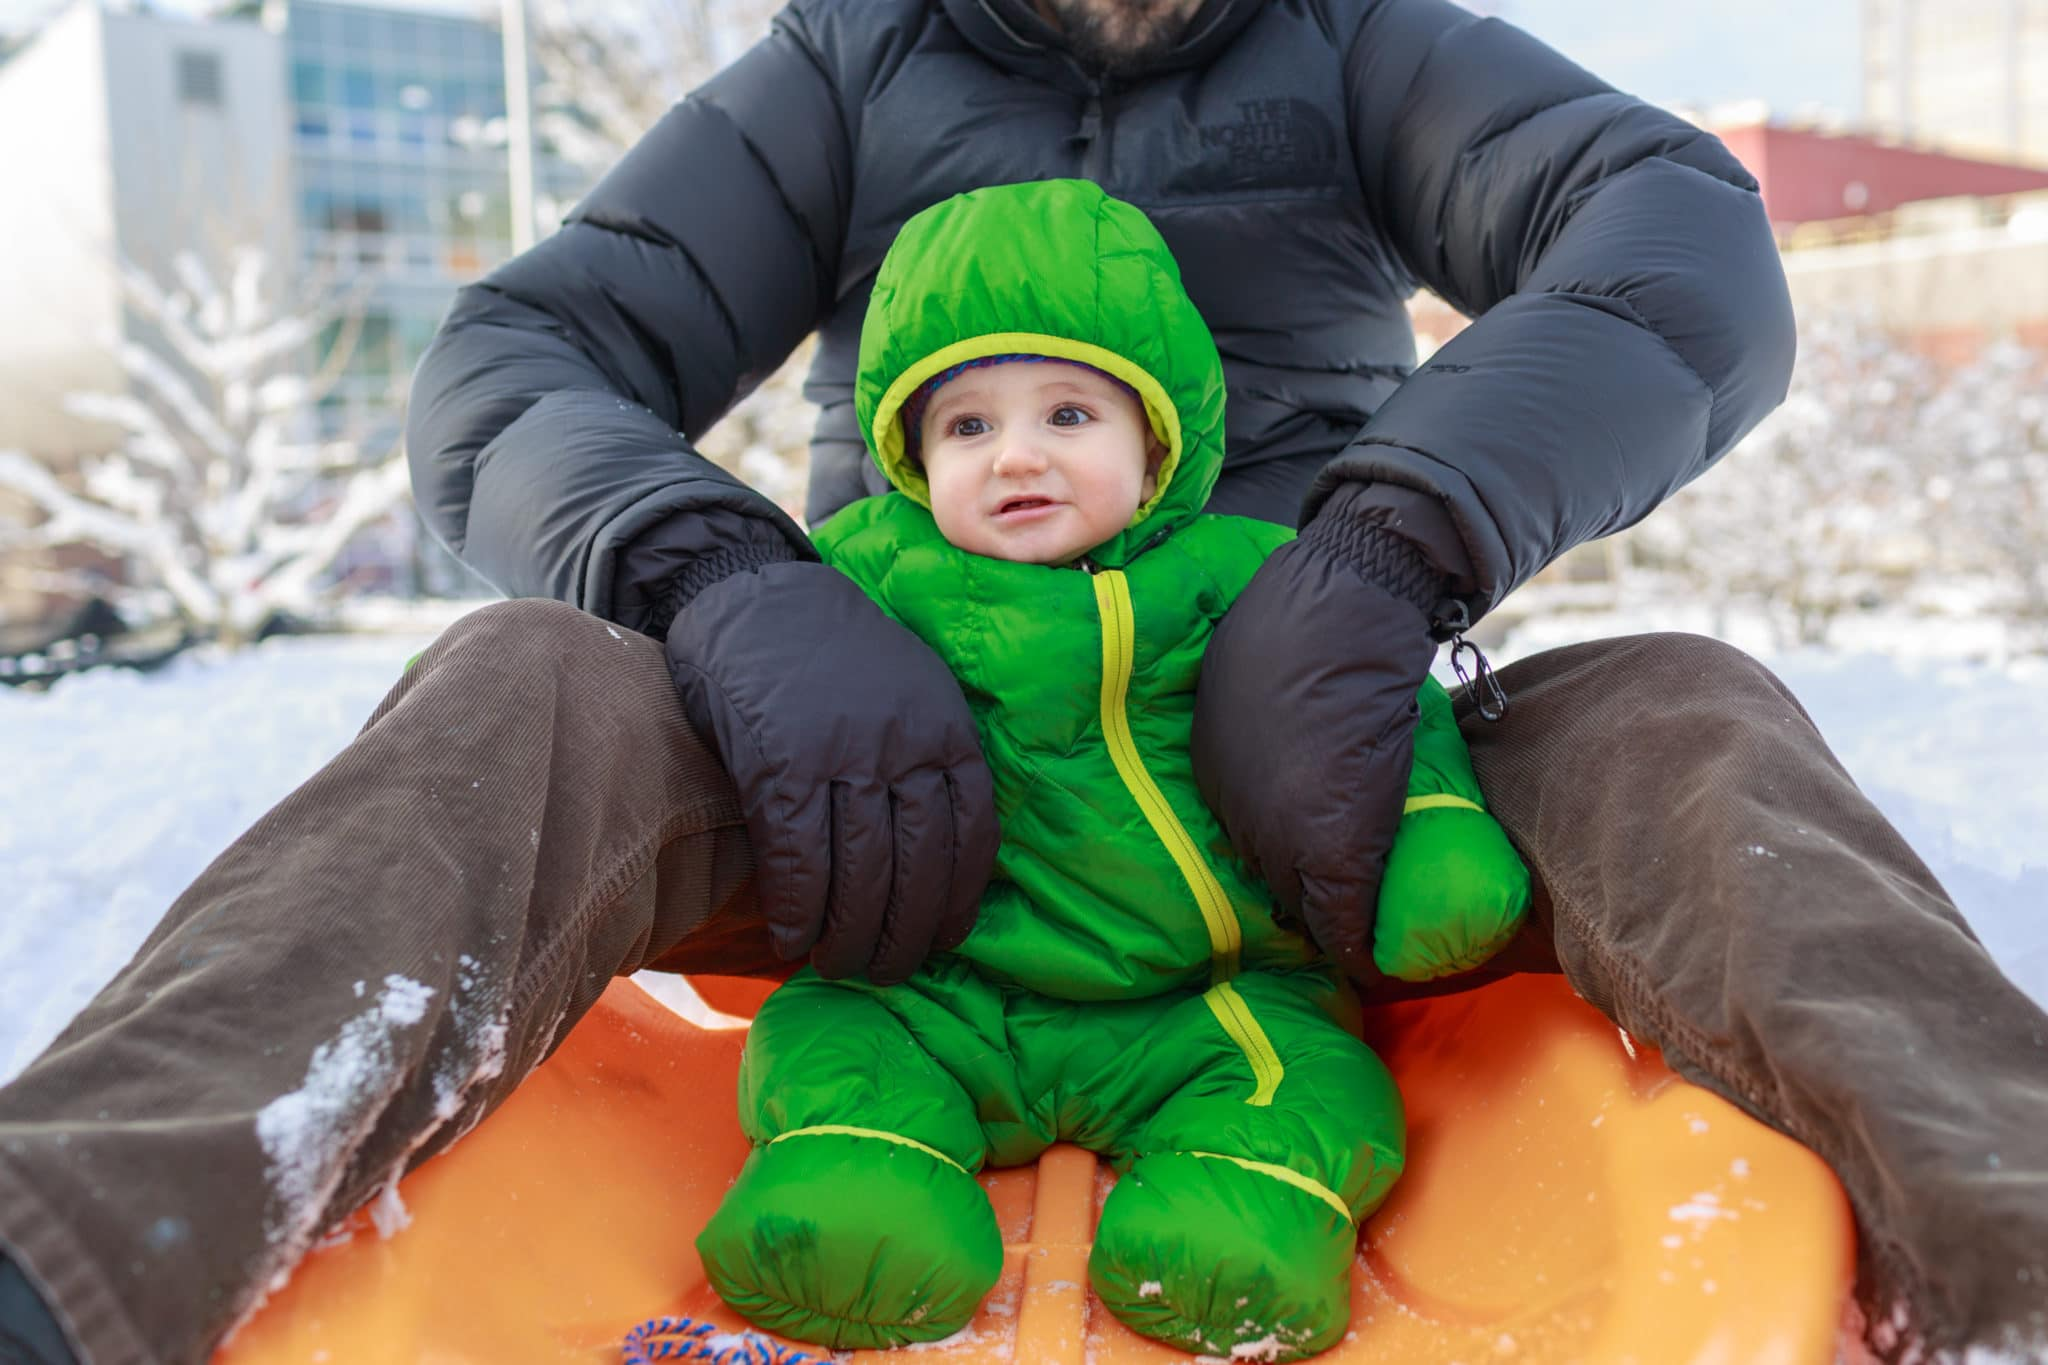 south boston family photographer documentary snow day winter outdoor